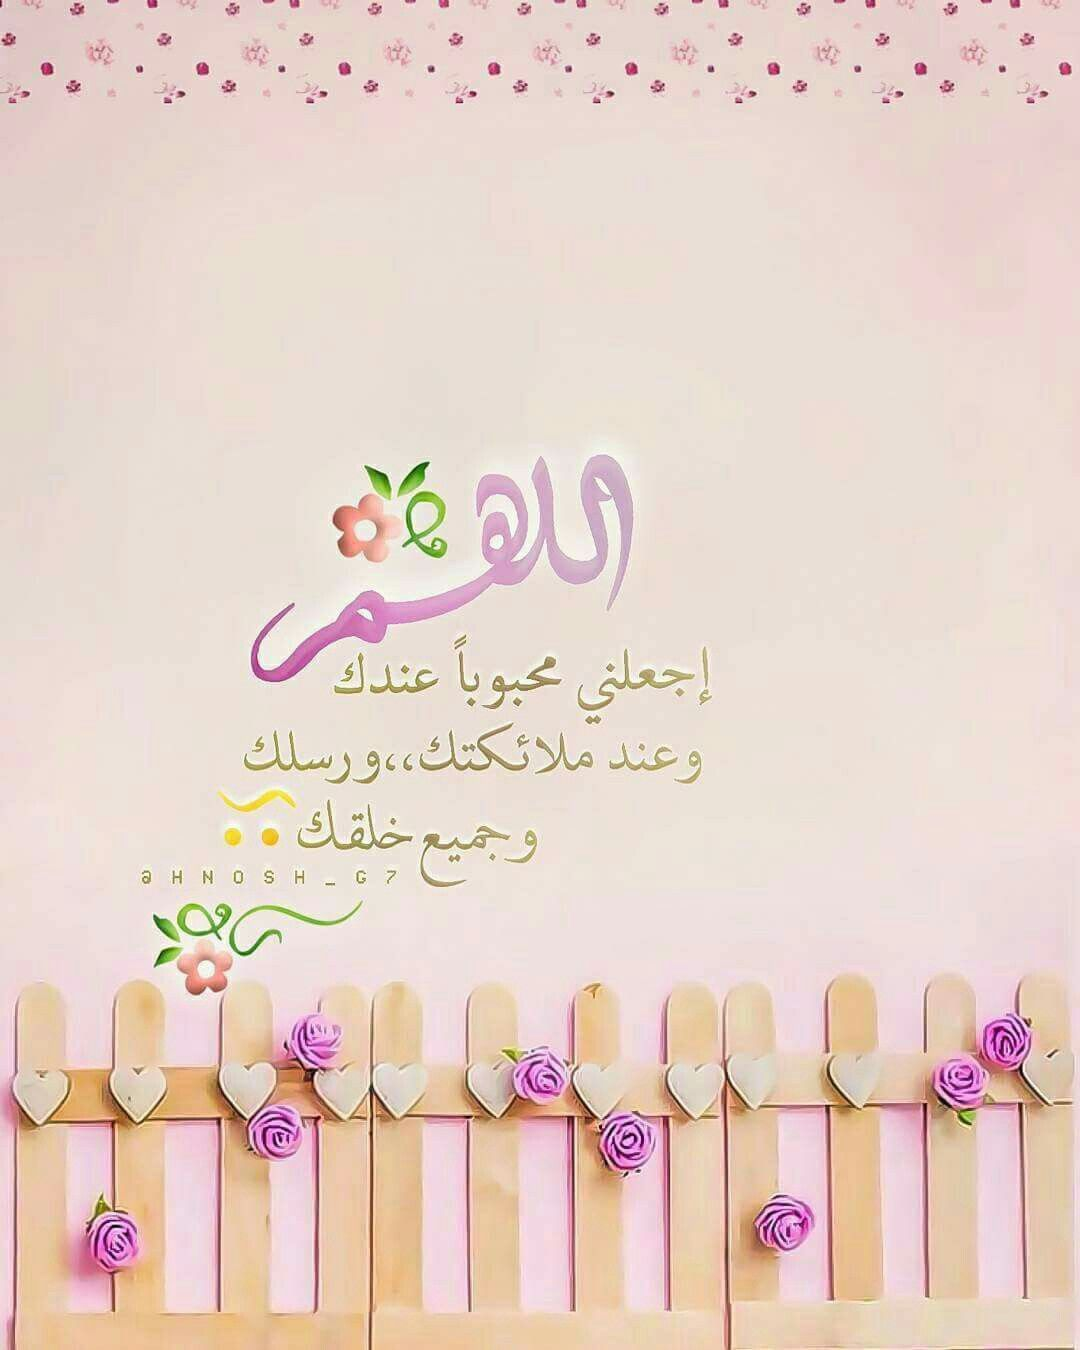 Pin By Maher Dabour On أدعـيـــــــ ـ ـ ـ ـ ـ ـ ــــــة Islamic Wallpaper Allah Quotes Allah